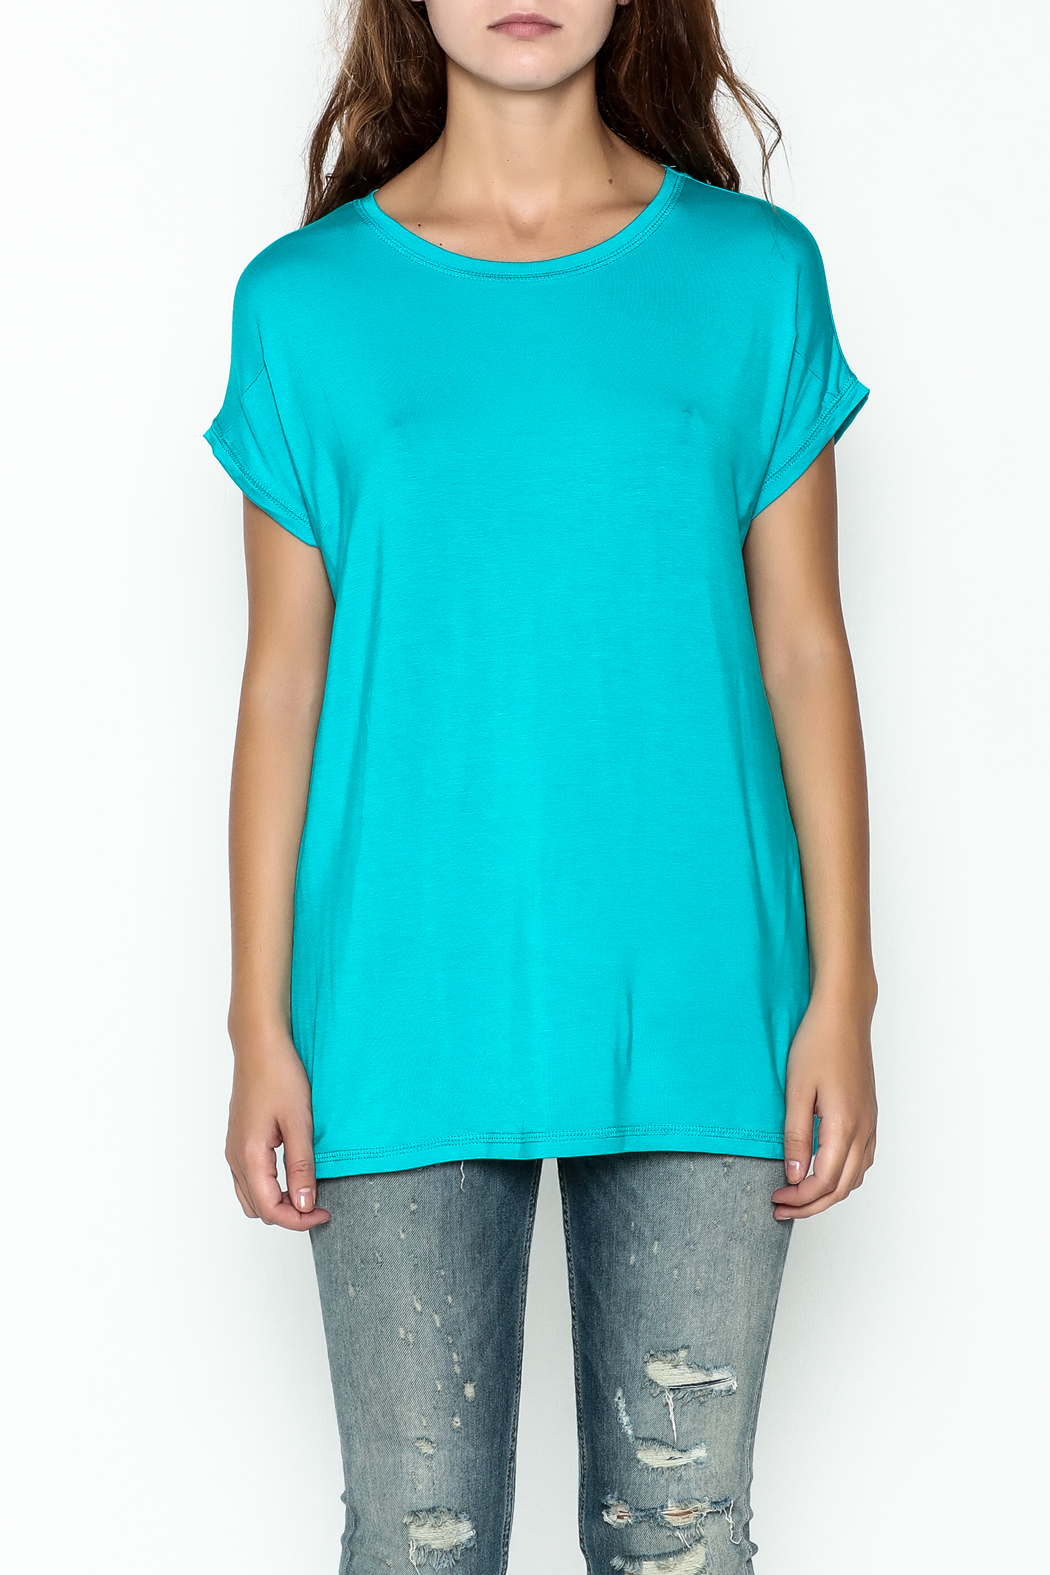 Piko  Bright Blue Top - Front Full Image